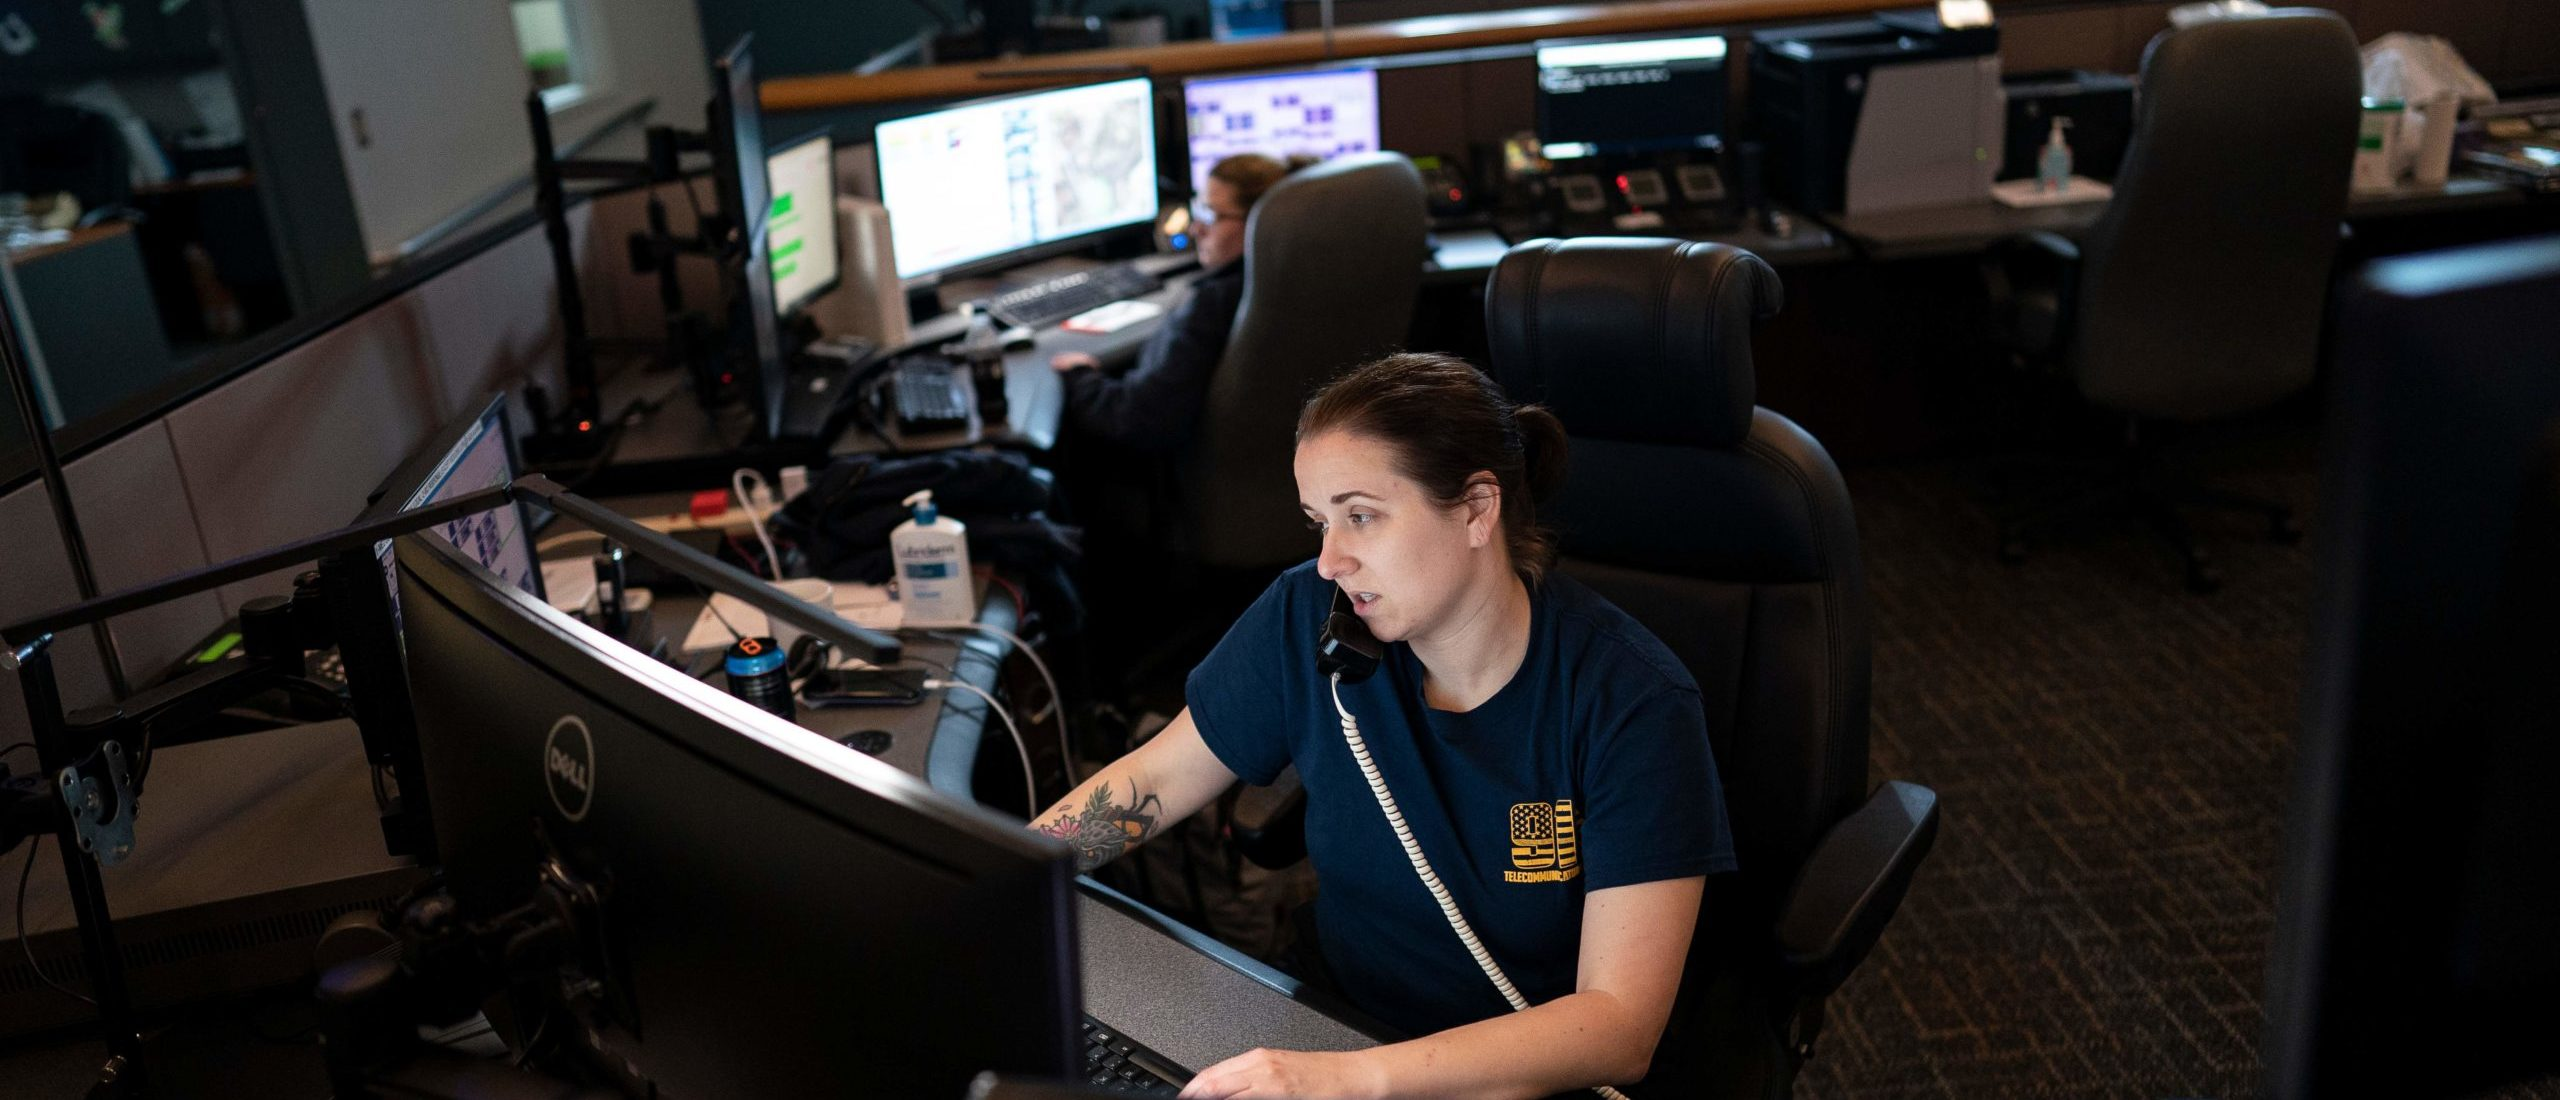 Police Departments Across The Country Report 911 Outages